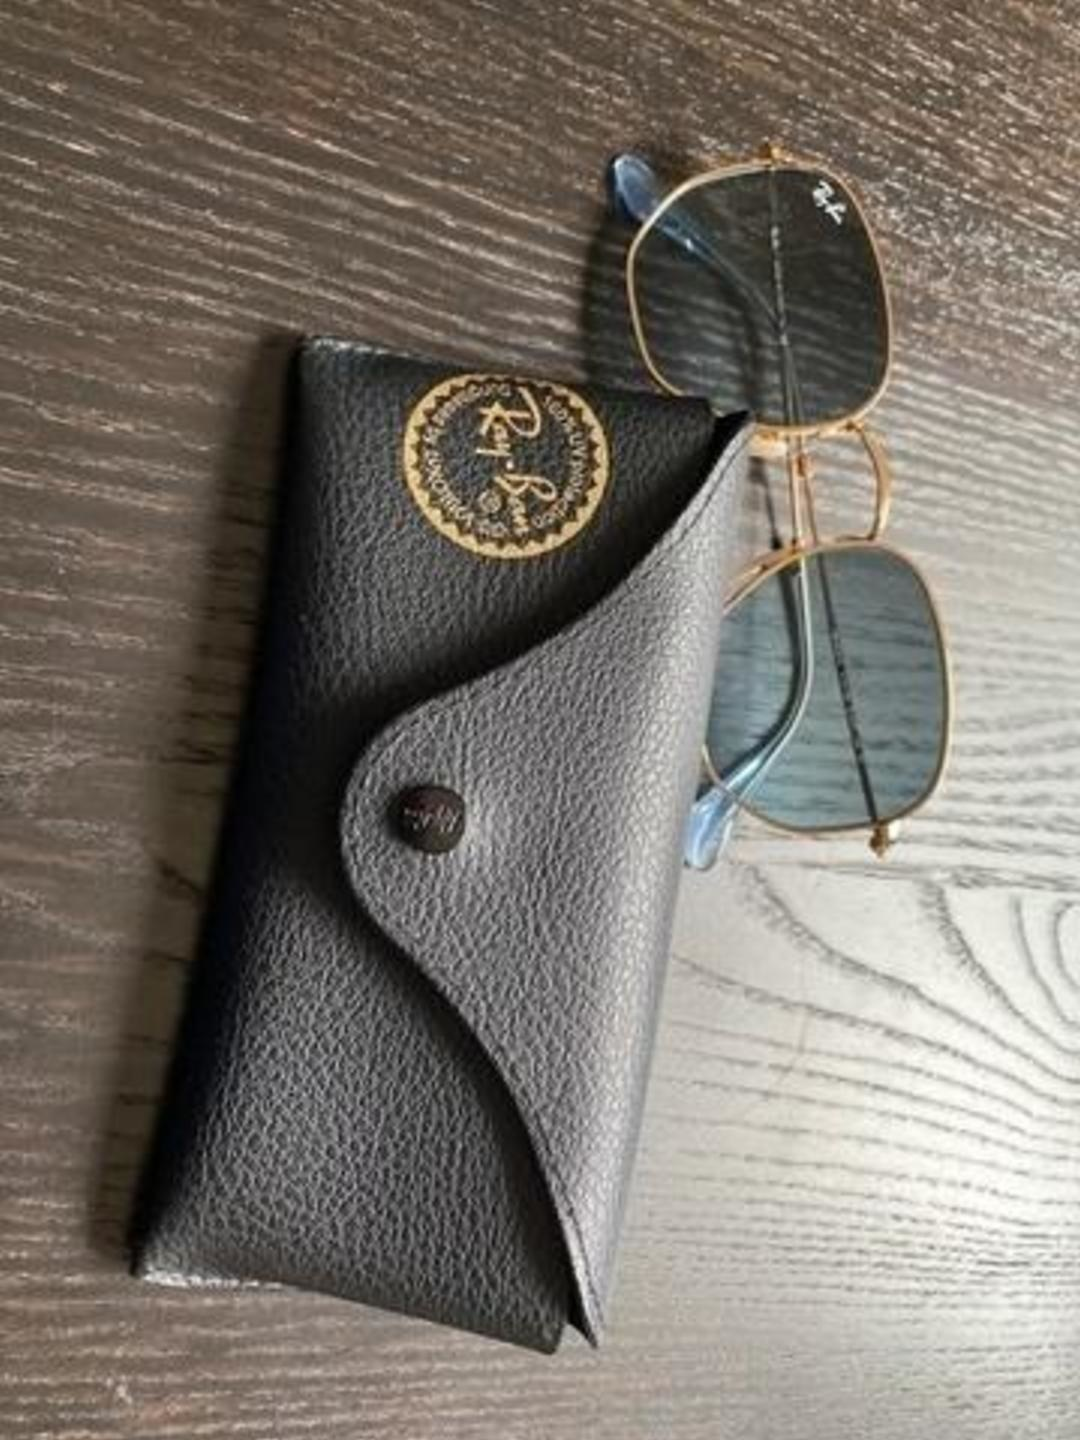 Women's sunglasses - RAY-BAN photo 1